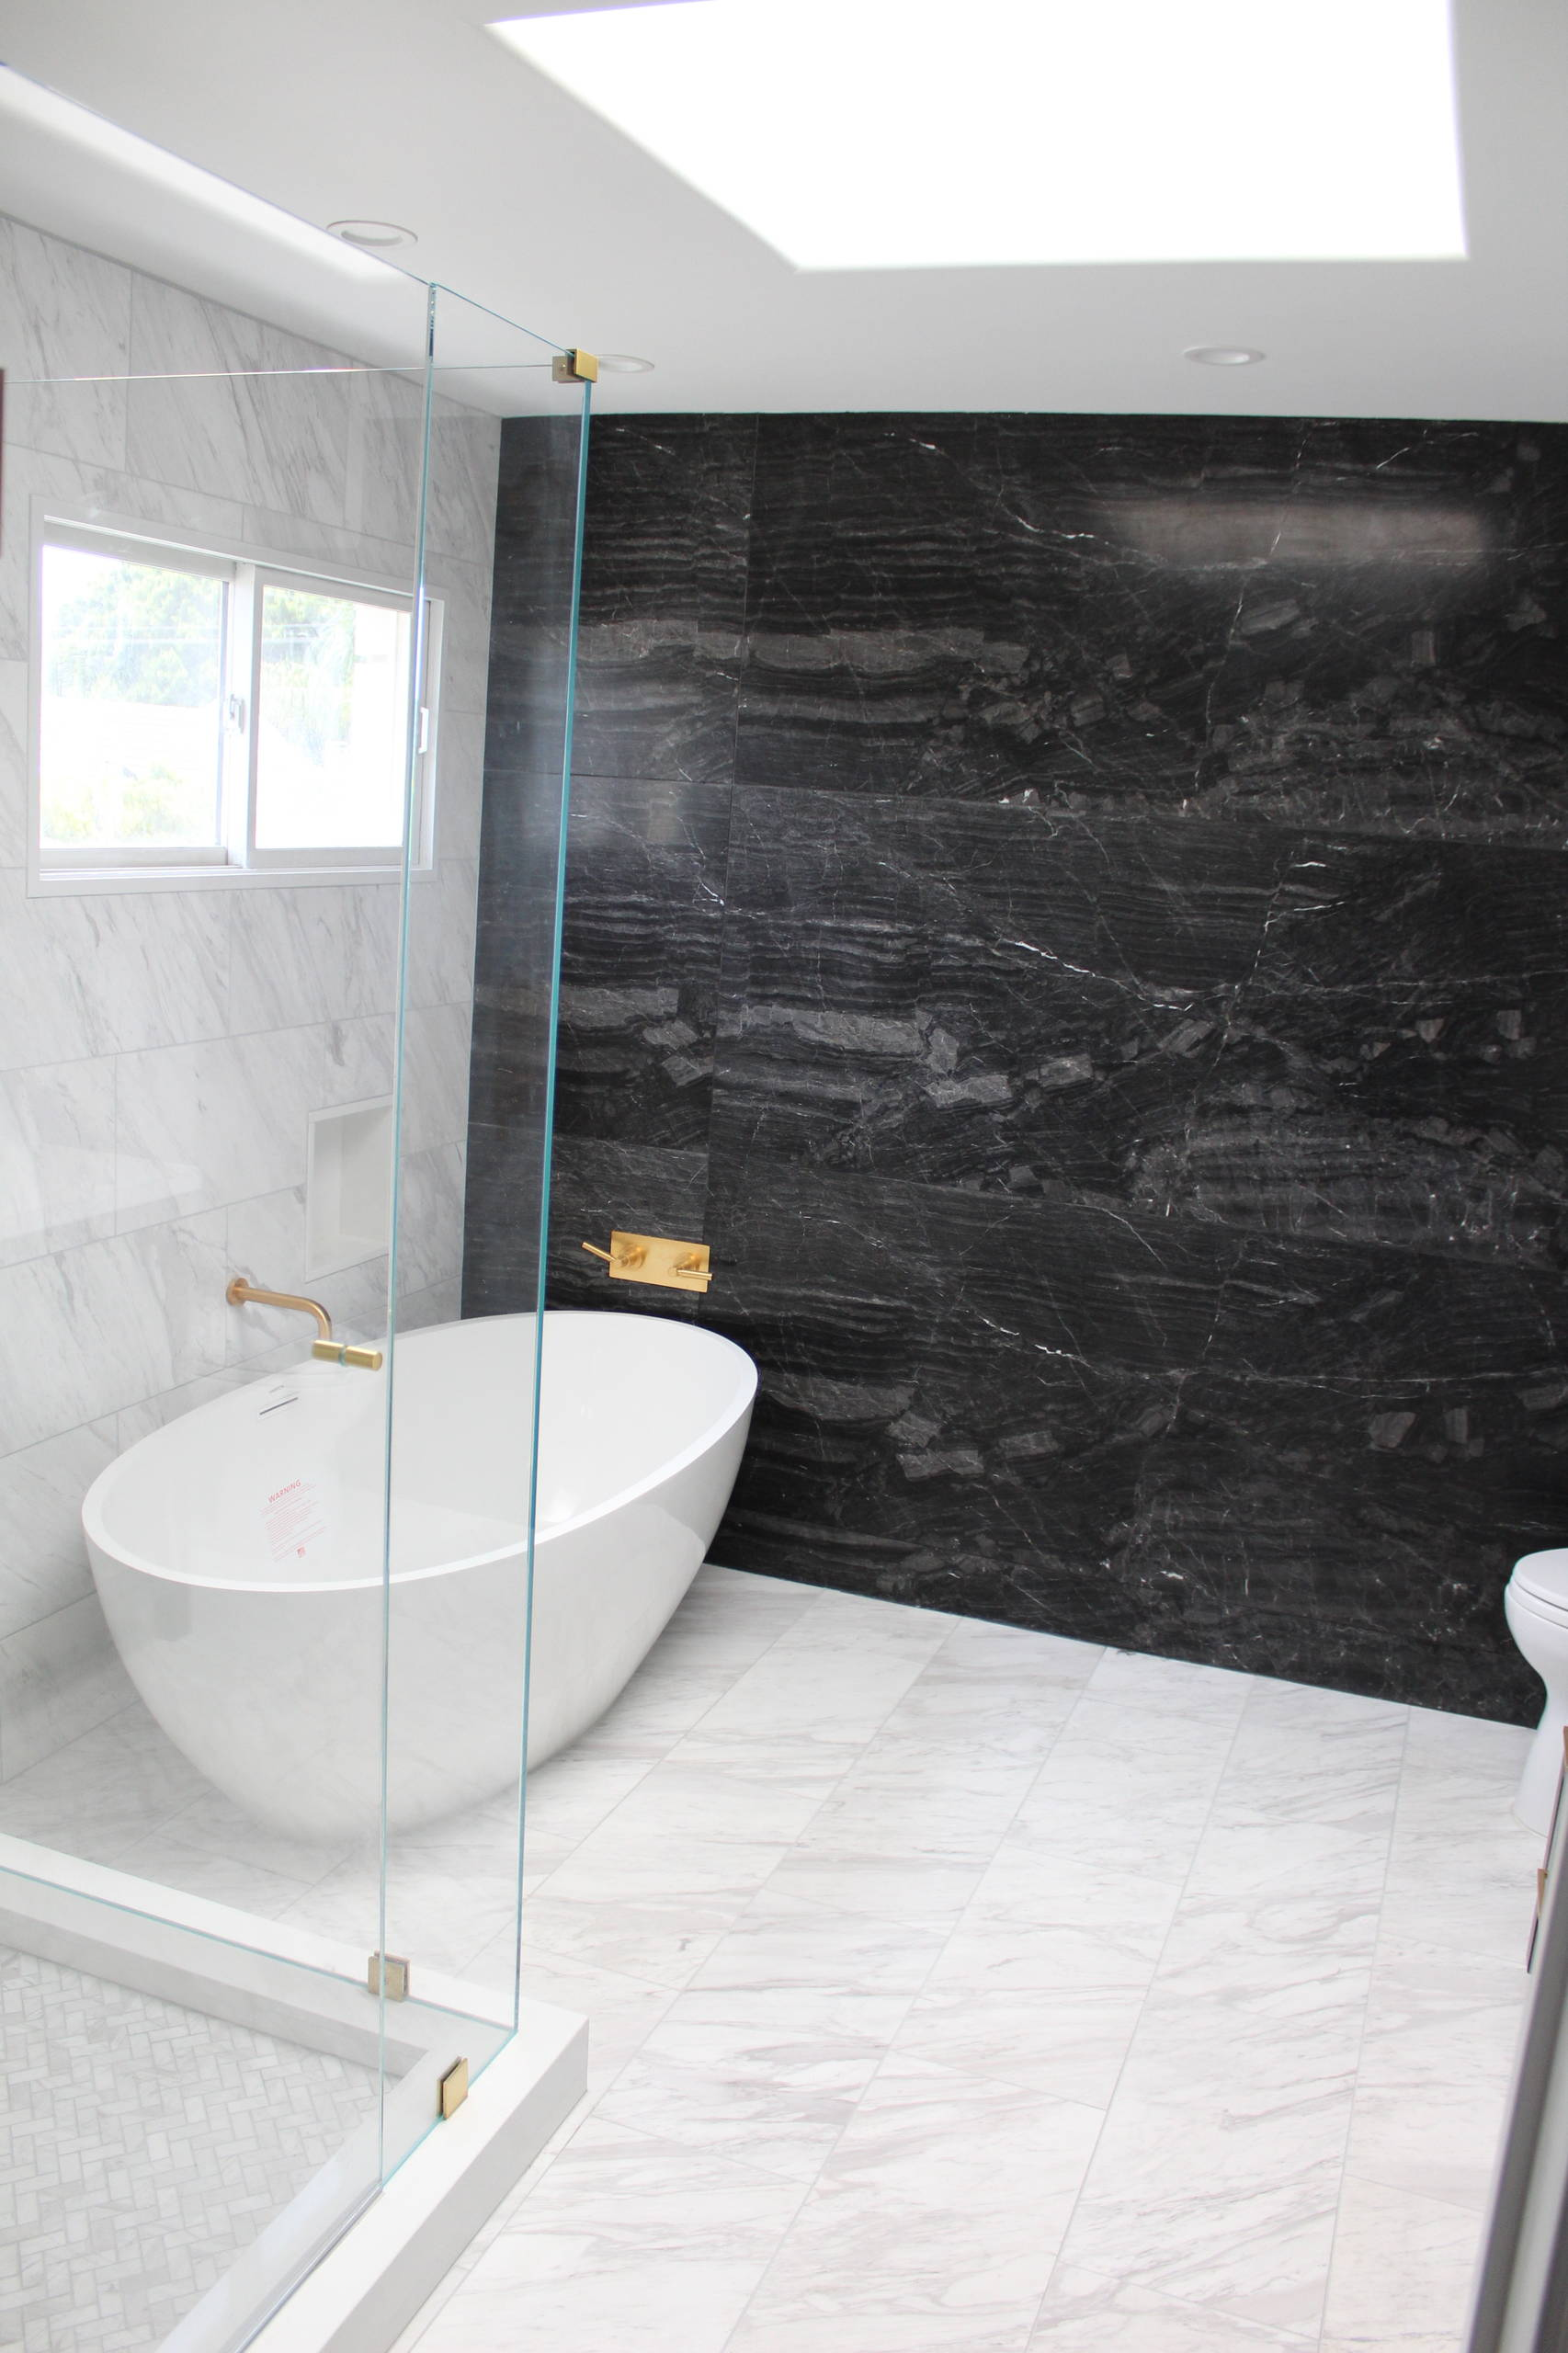 75 Beautiful Marble Tile Bathroom With Black Cabinets Pictures Ideas December 2020 Houzz